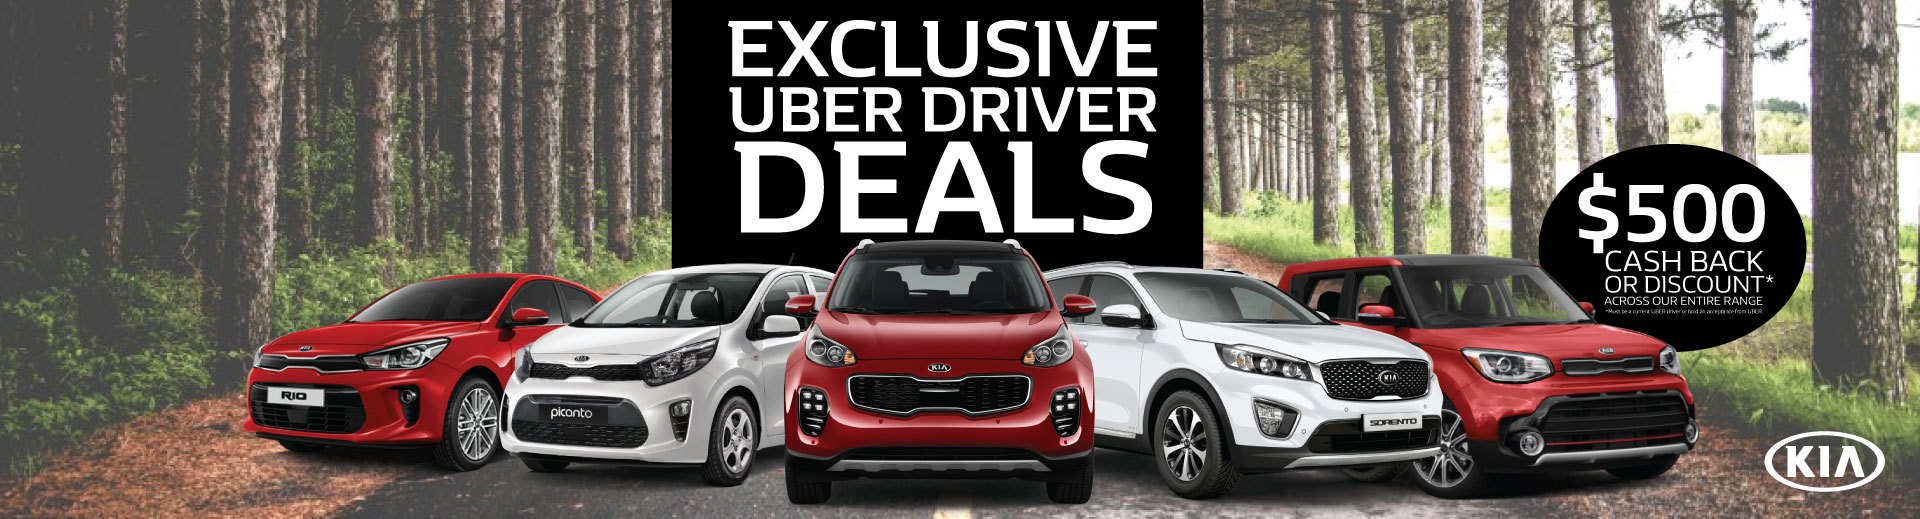 Exclusive Deals for Uber Drivers